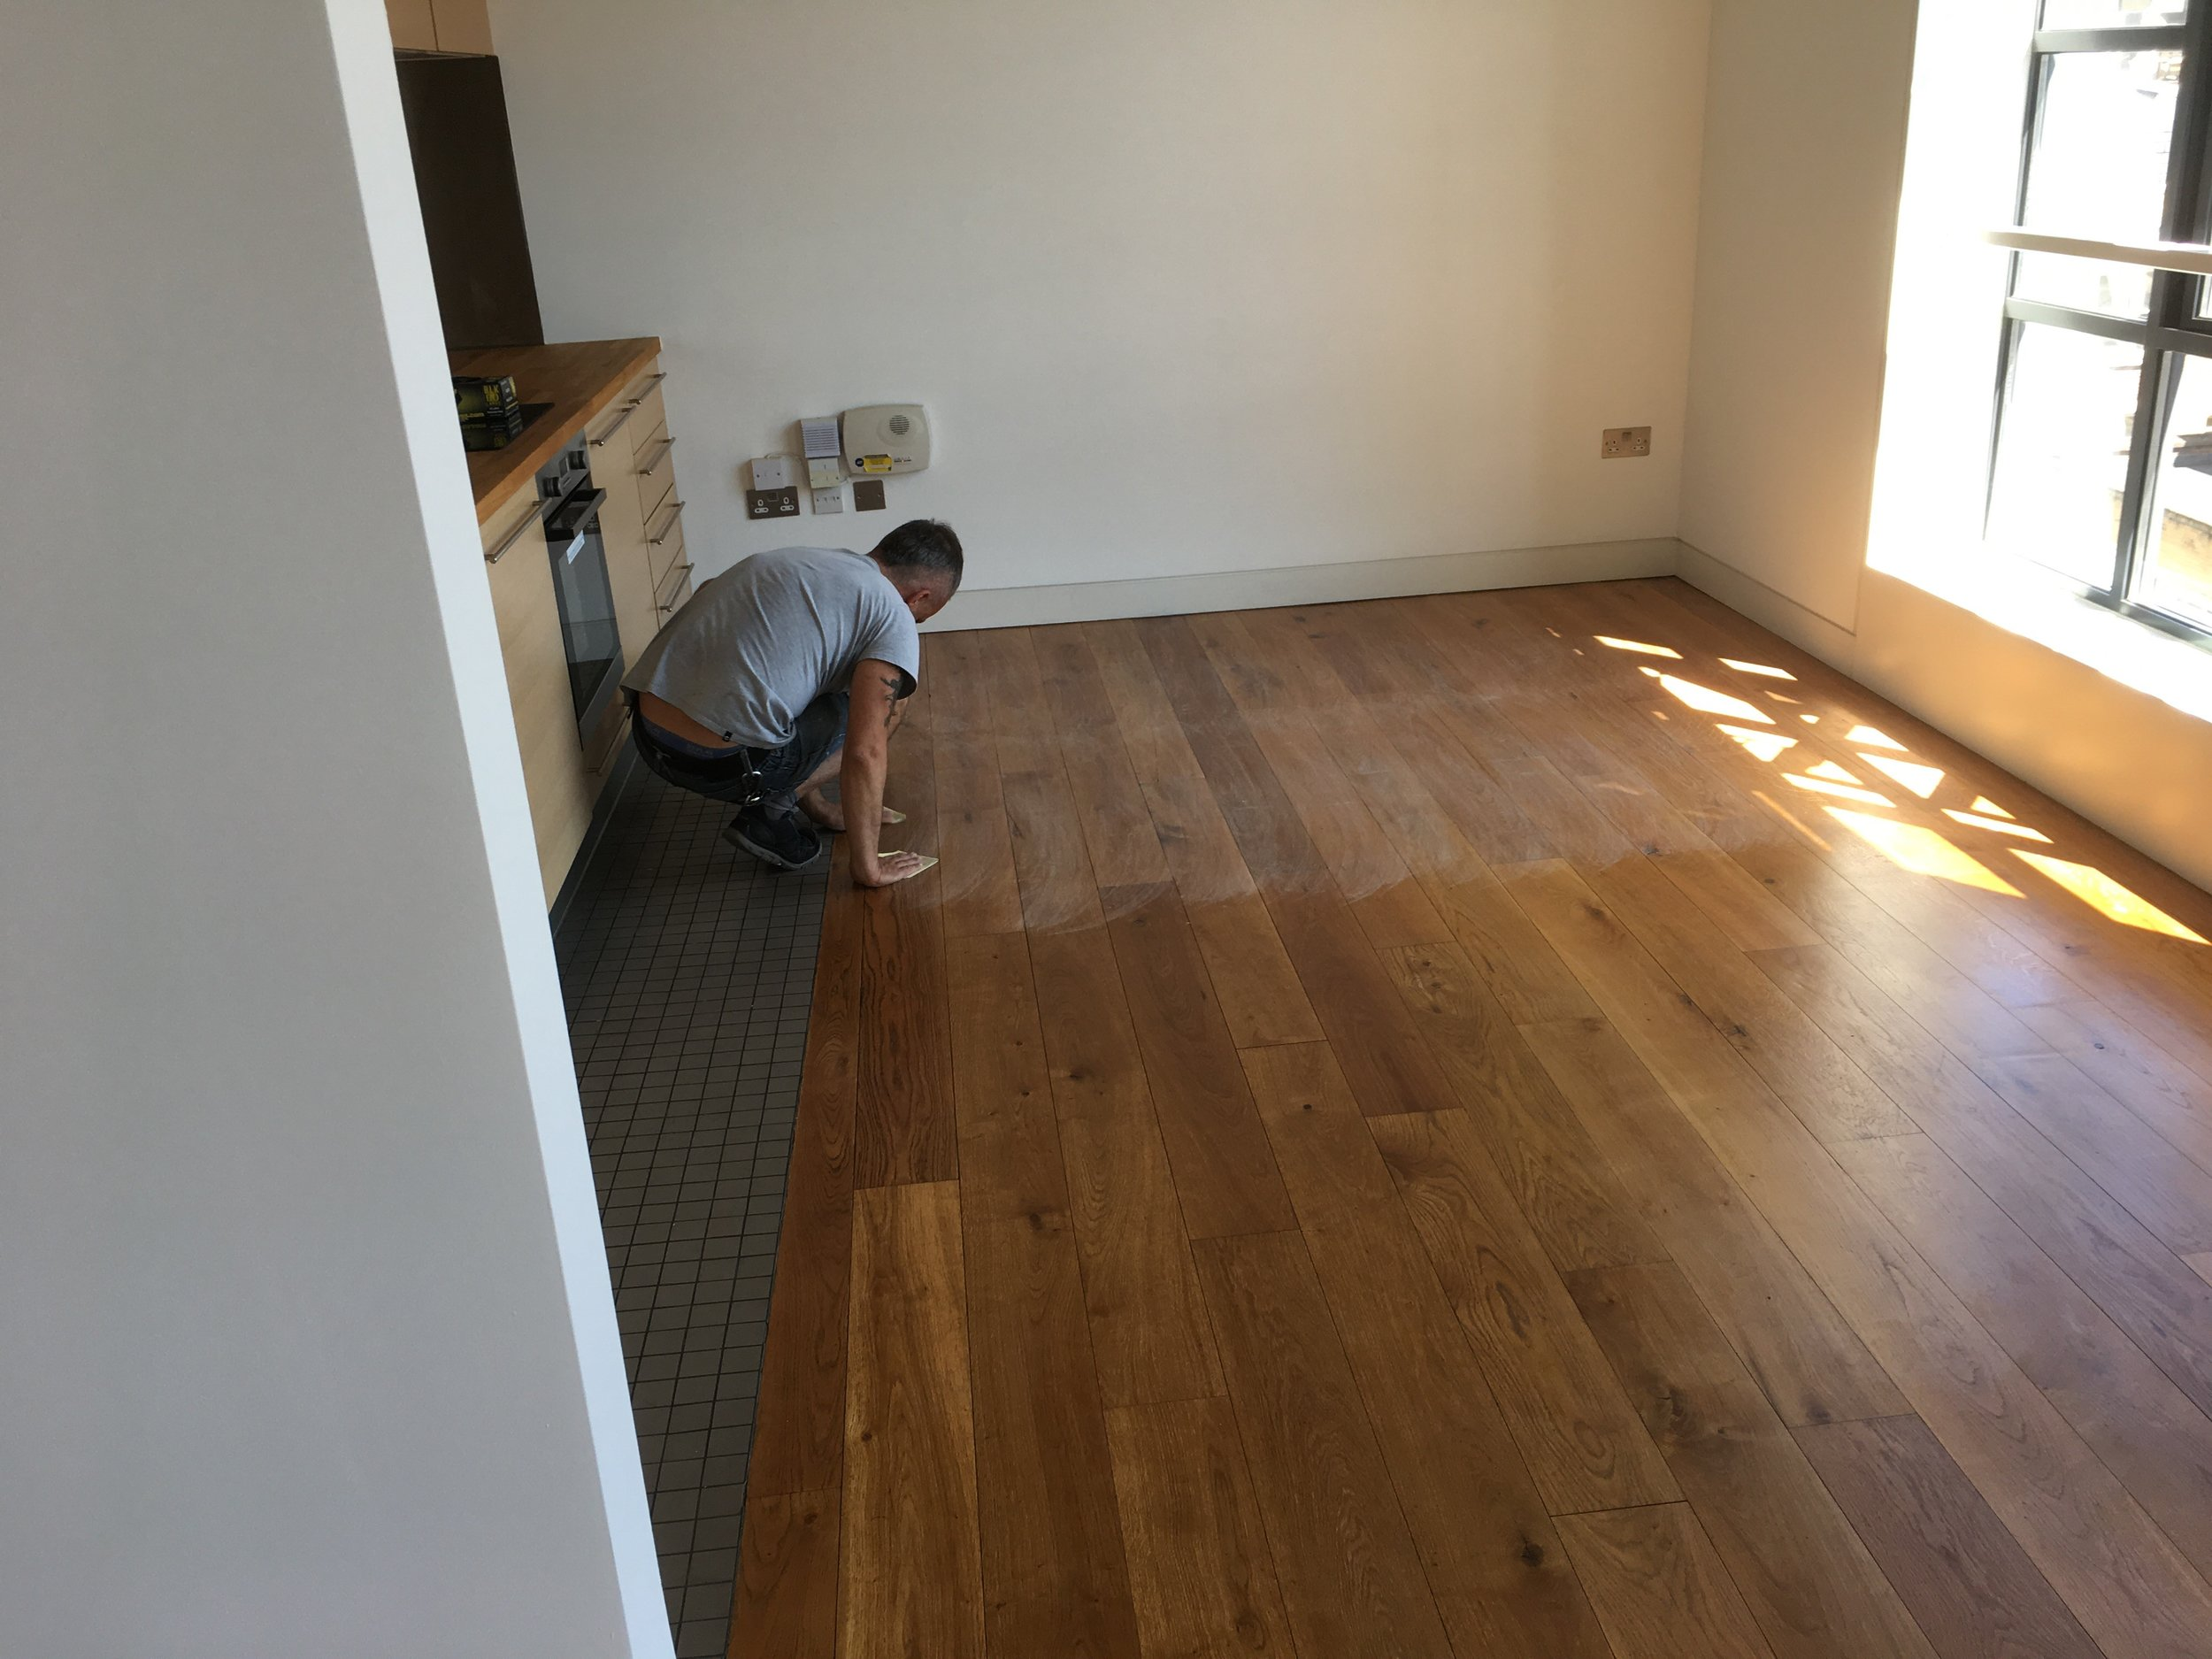 How To Care For Your Wood Floor Colltec Soltuions Ltd